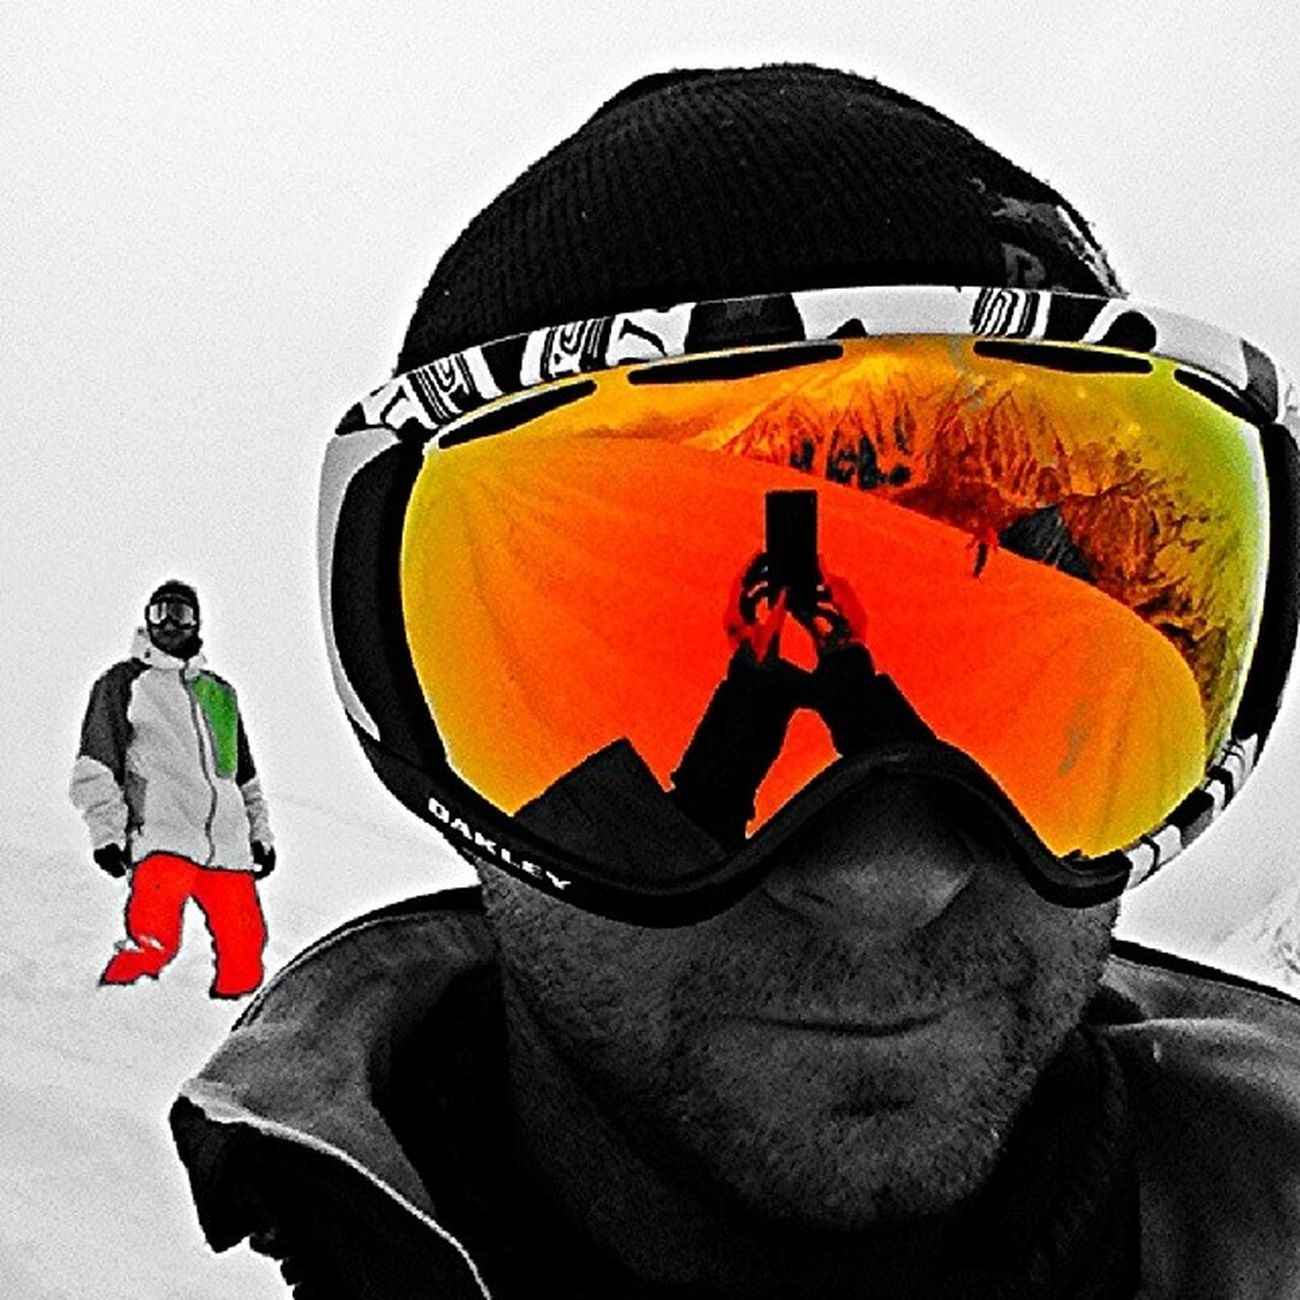 Same place... working again.. It's a hard life.. Prali Snowboard Snowboarding Freeriding Fuoripista Snow Mountain Alps Xperiaz 13laghi Oakley Burton  Ak  Photooftoday Colour_splashed Bnwitalian  Blackandwhite Blancoynegro Biancoenero Bwporn Bw_lovers Instagram Bestoftoday